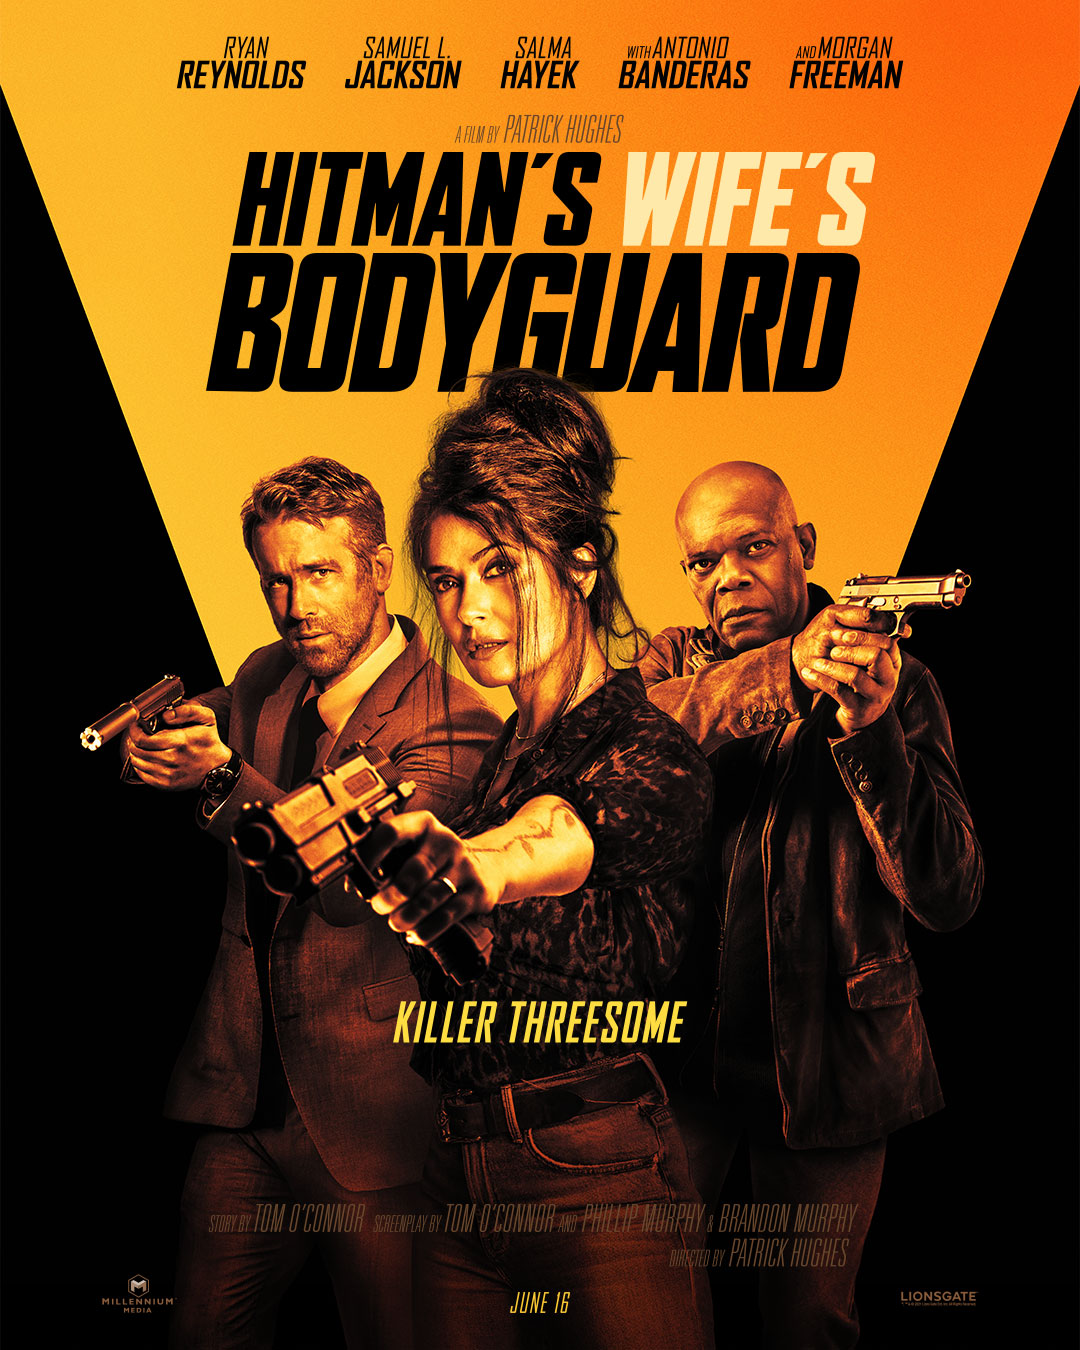 This is the movie poster for the film. The three actors, and actress, are holding guns